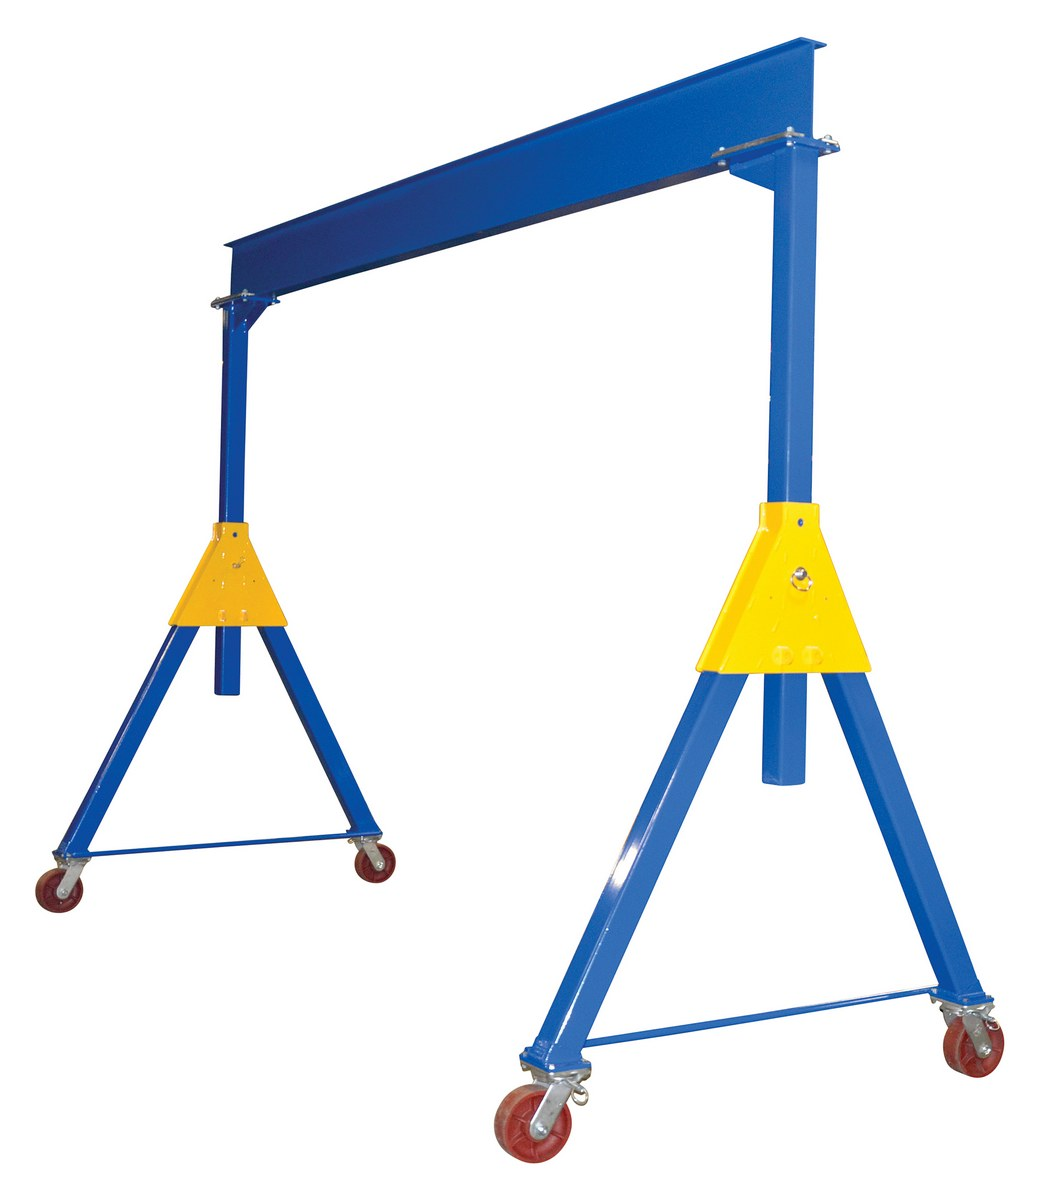 Adjustable Steel Gantry Cranes - Knockdown - Product Page